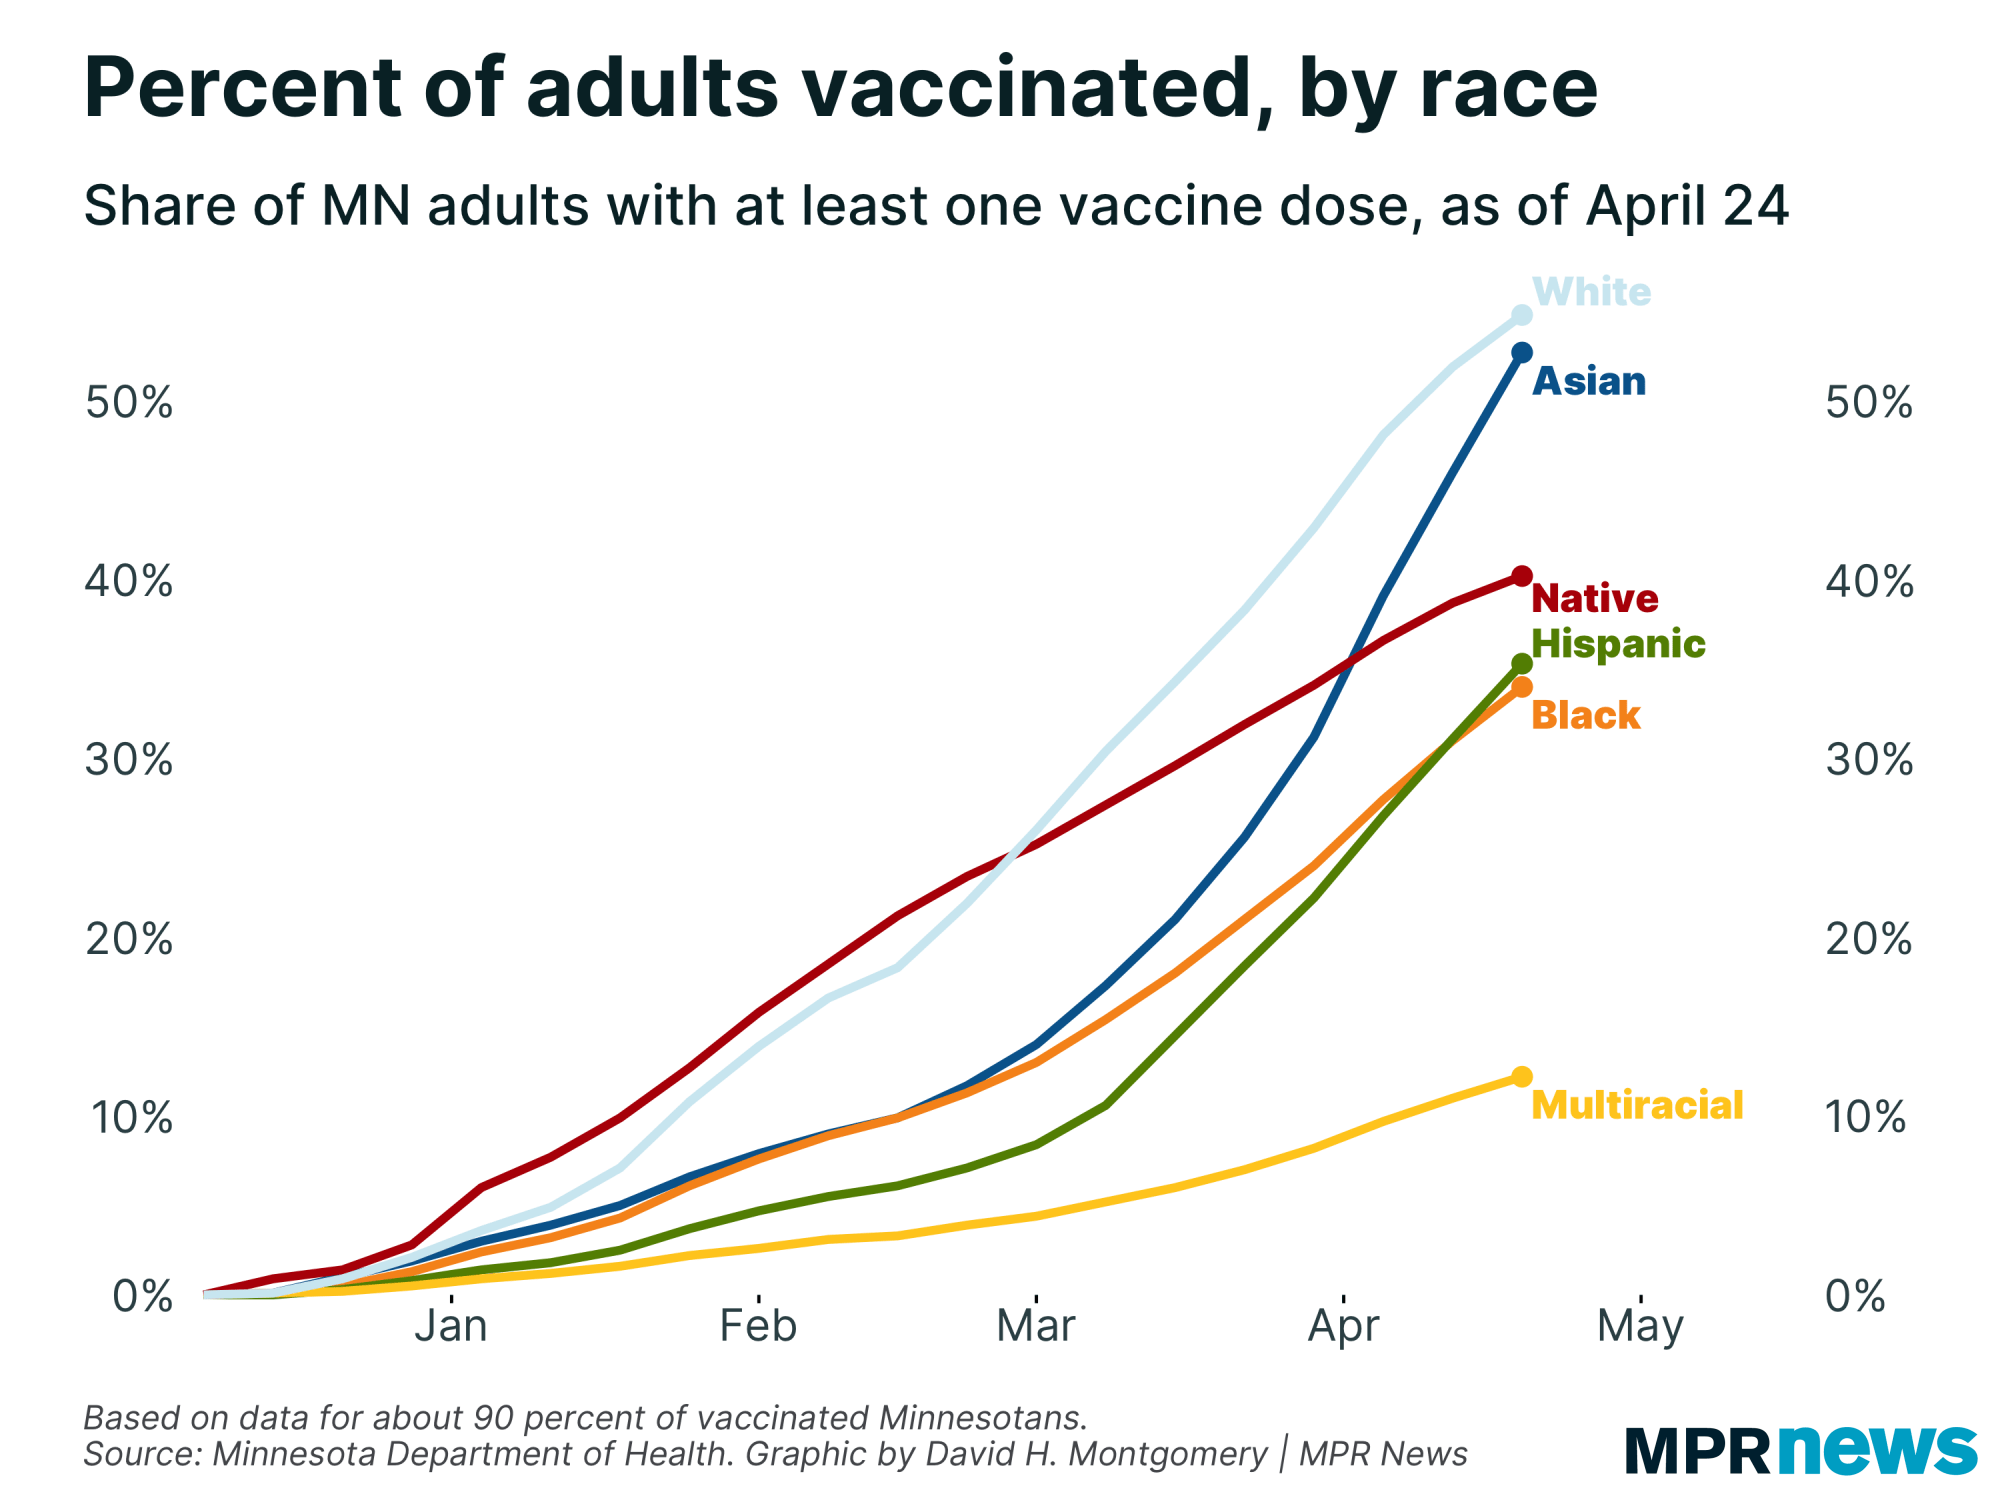 Chart of vaccinations by race